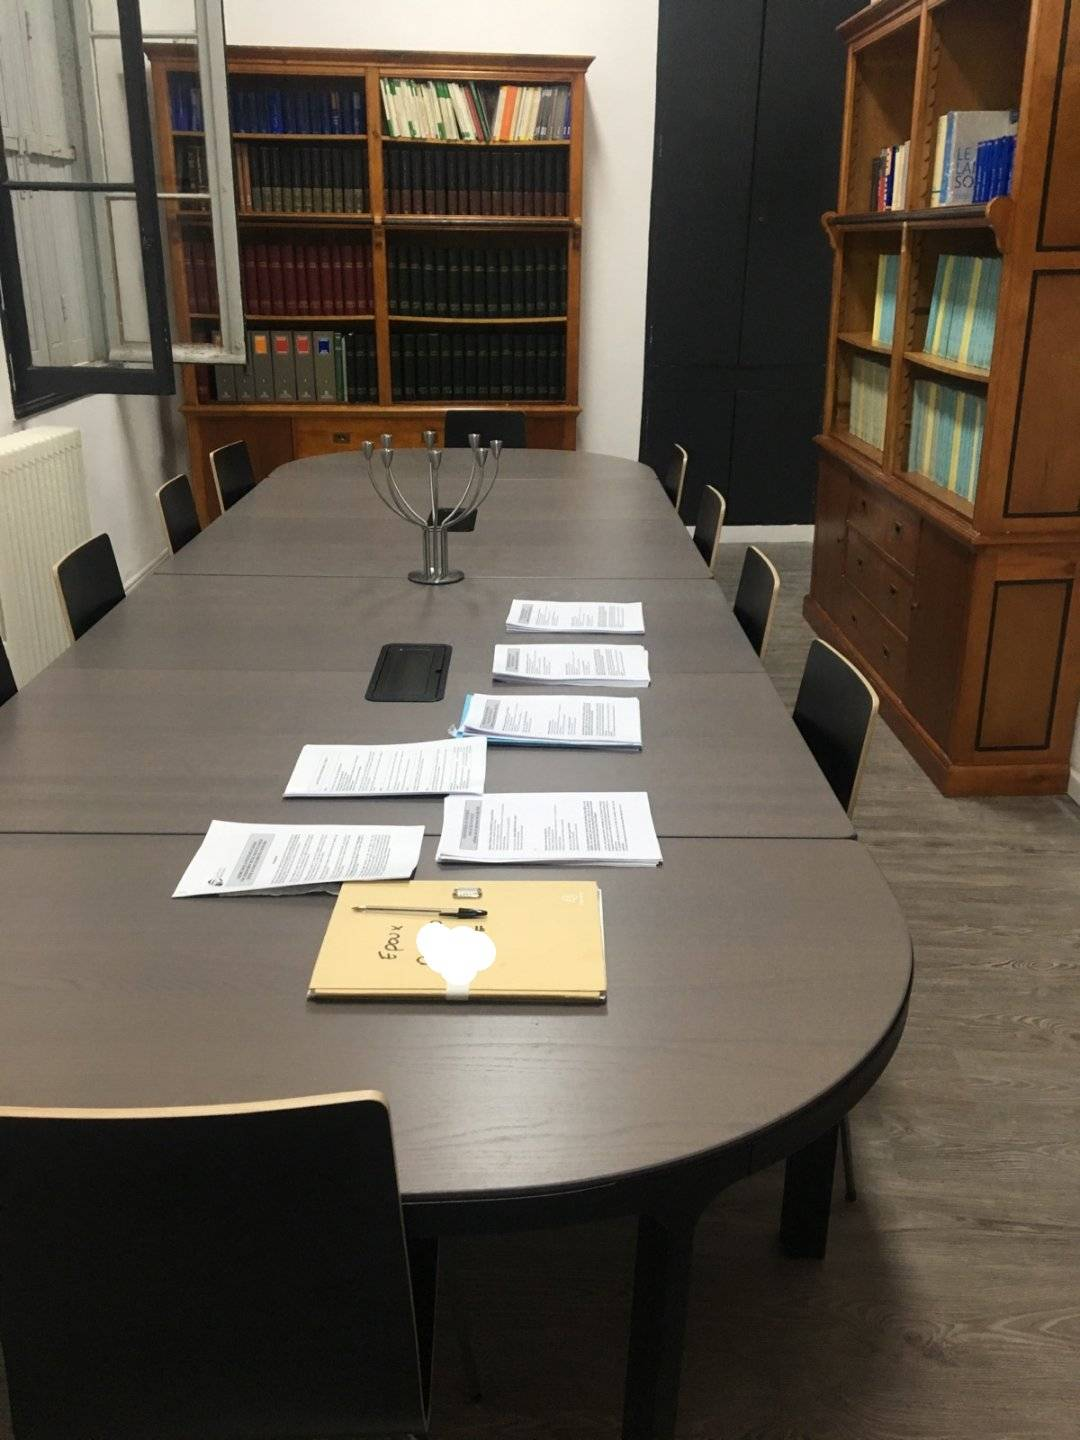 Cabinet d avocats marseille - Cabinet radiologie marseille ...